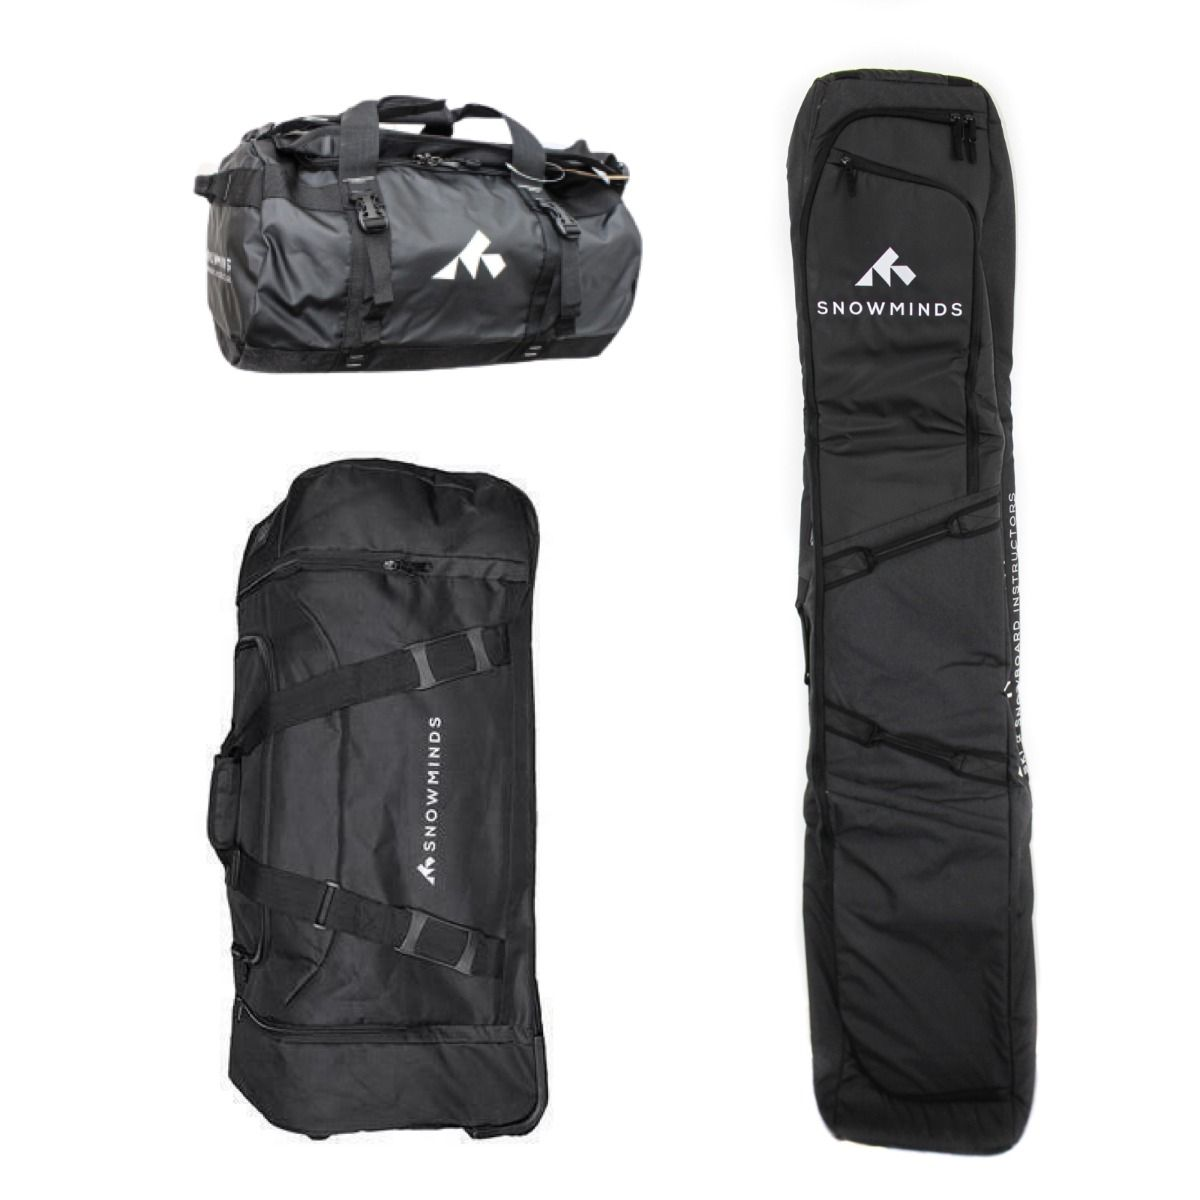 The Extended Snowminds Bag Package